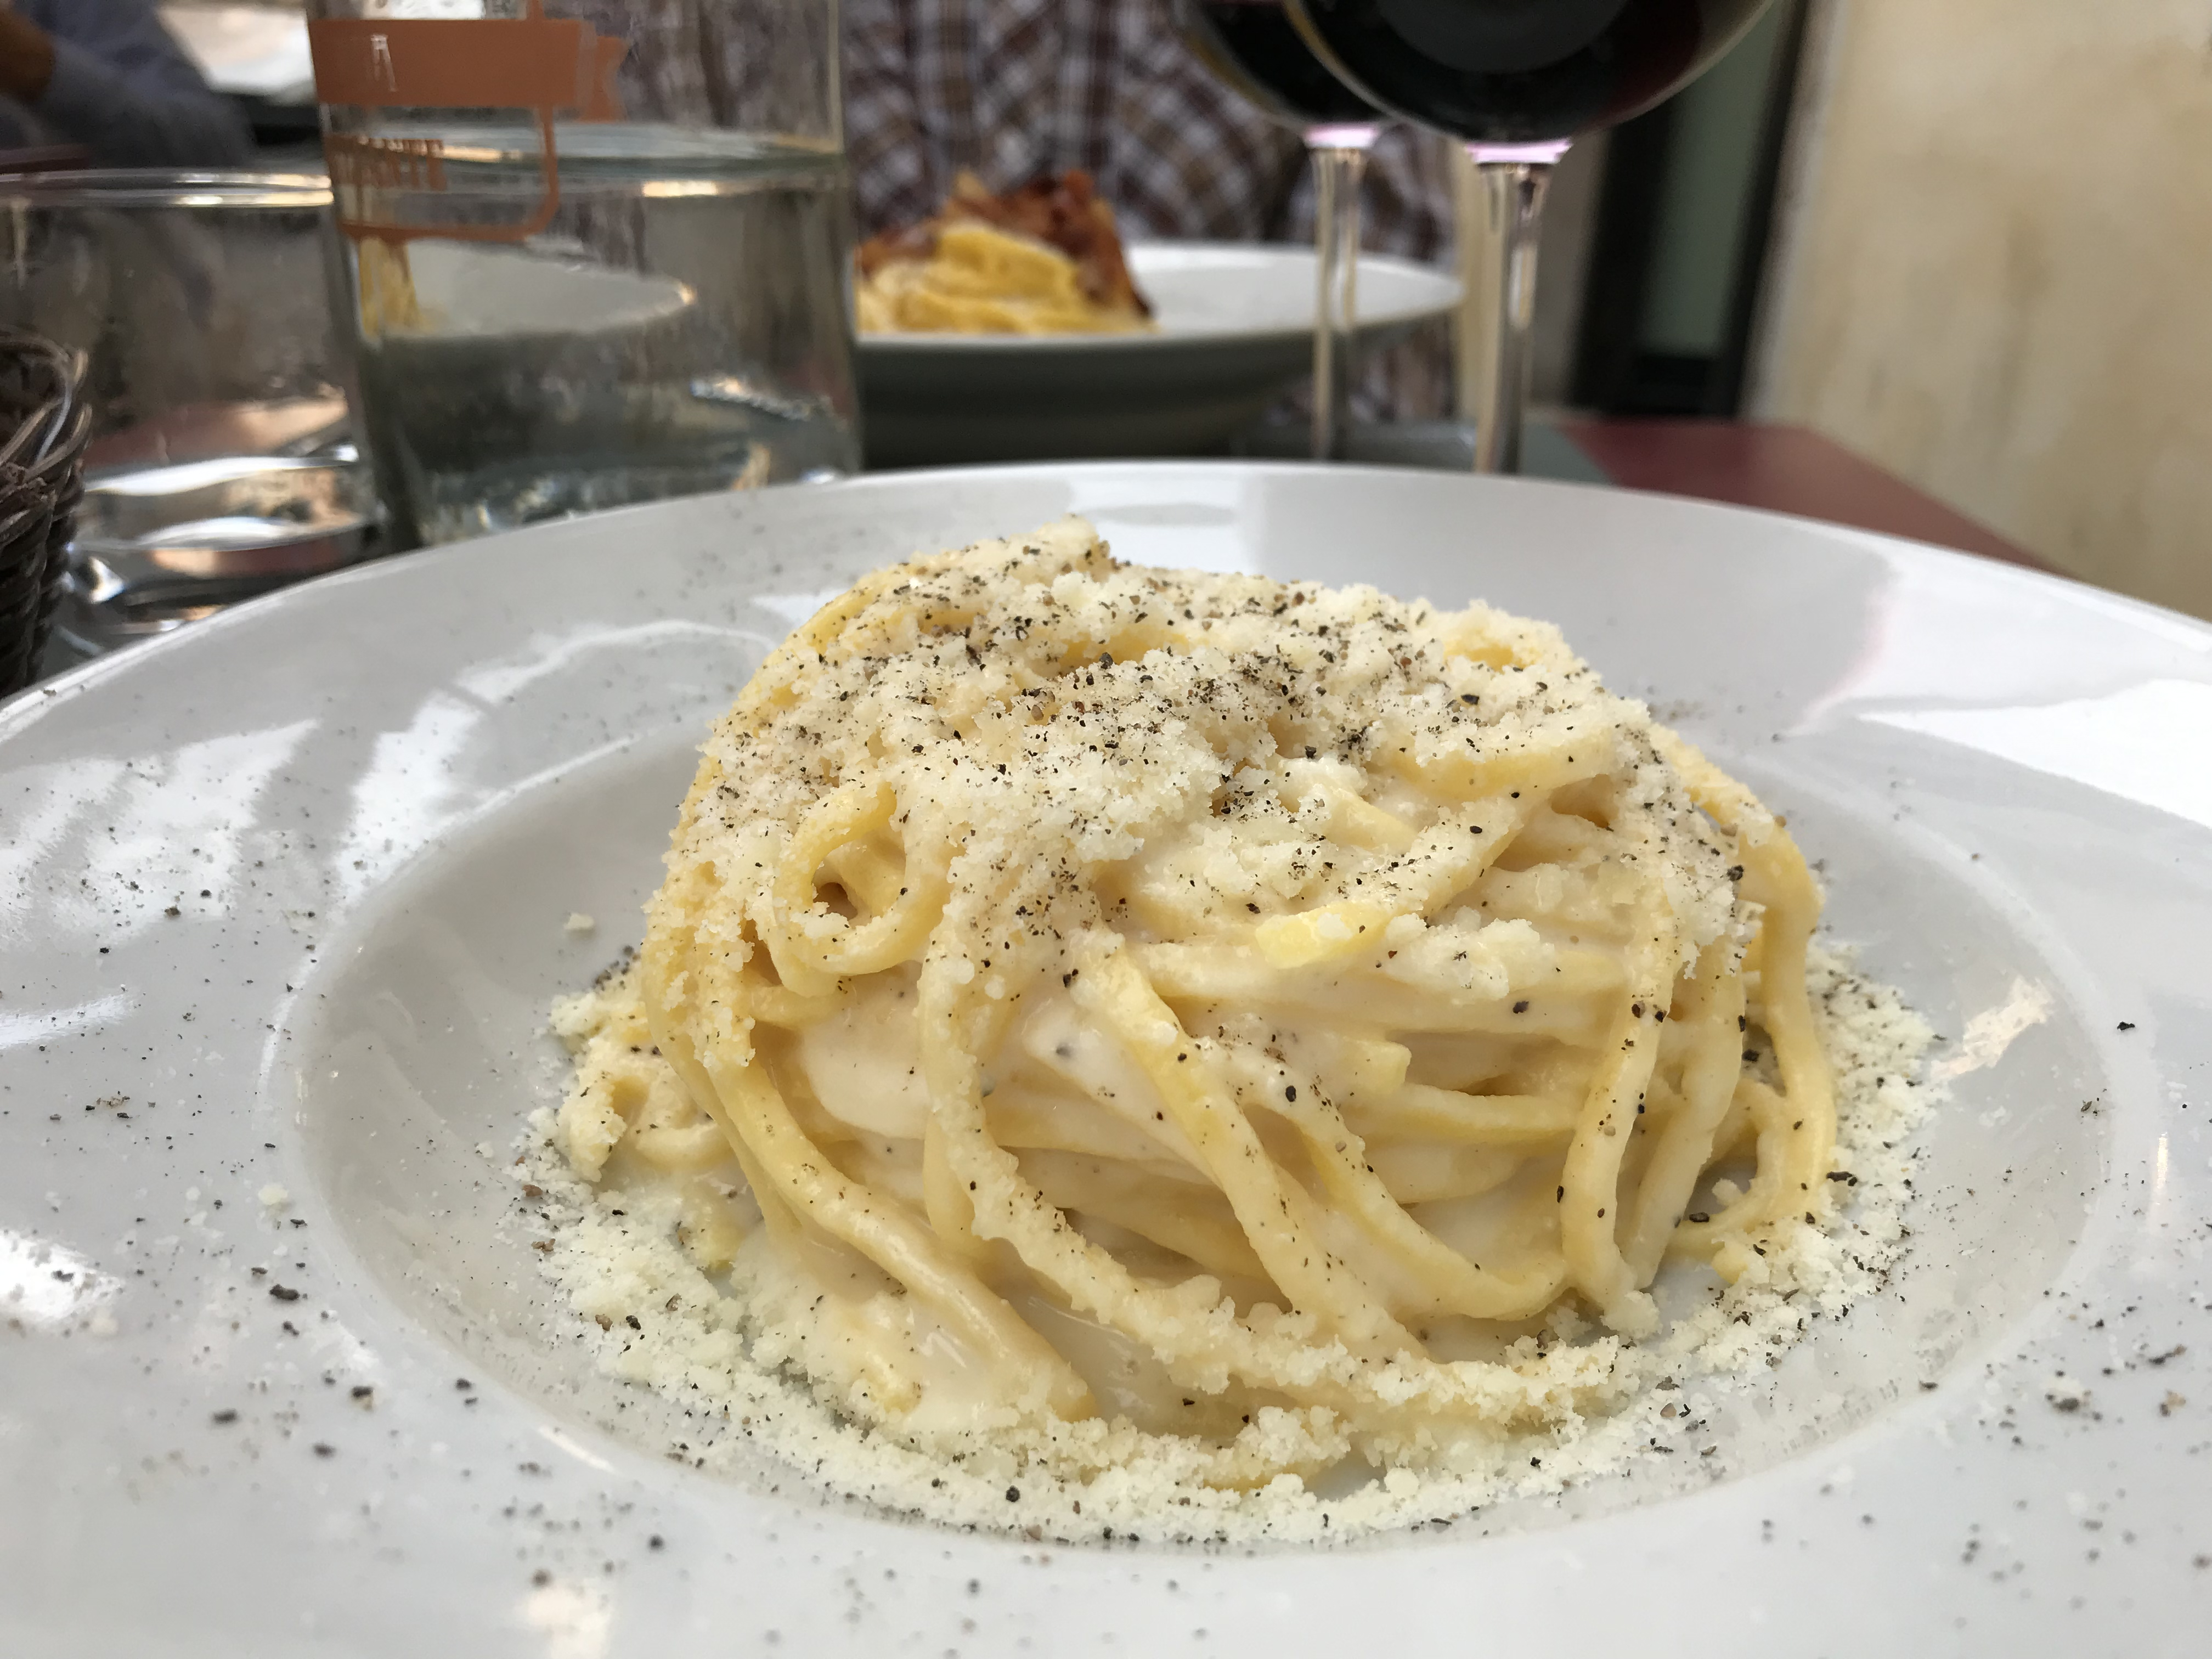 Cacio e pepe Cheese and black pepper pasta